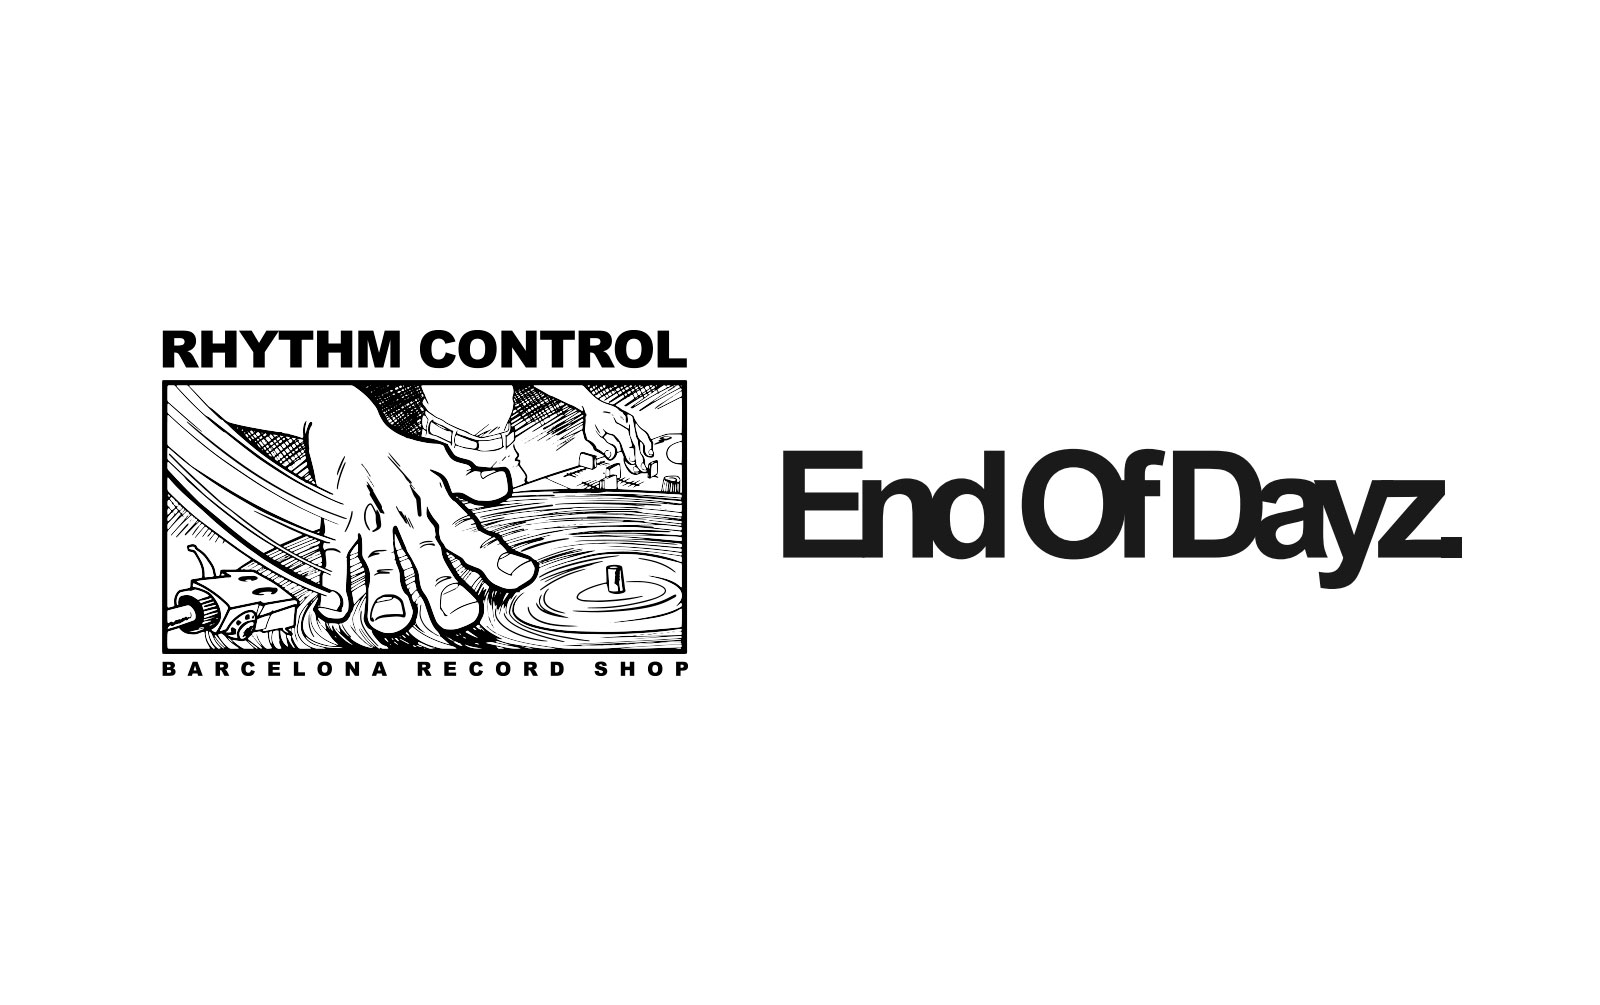 End of Dayz / Rhythm Control Barcelona